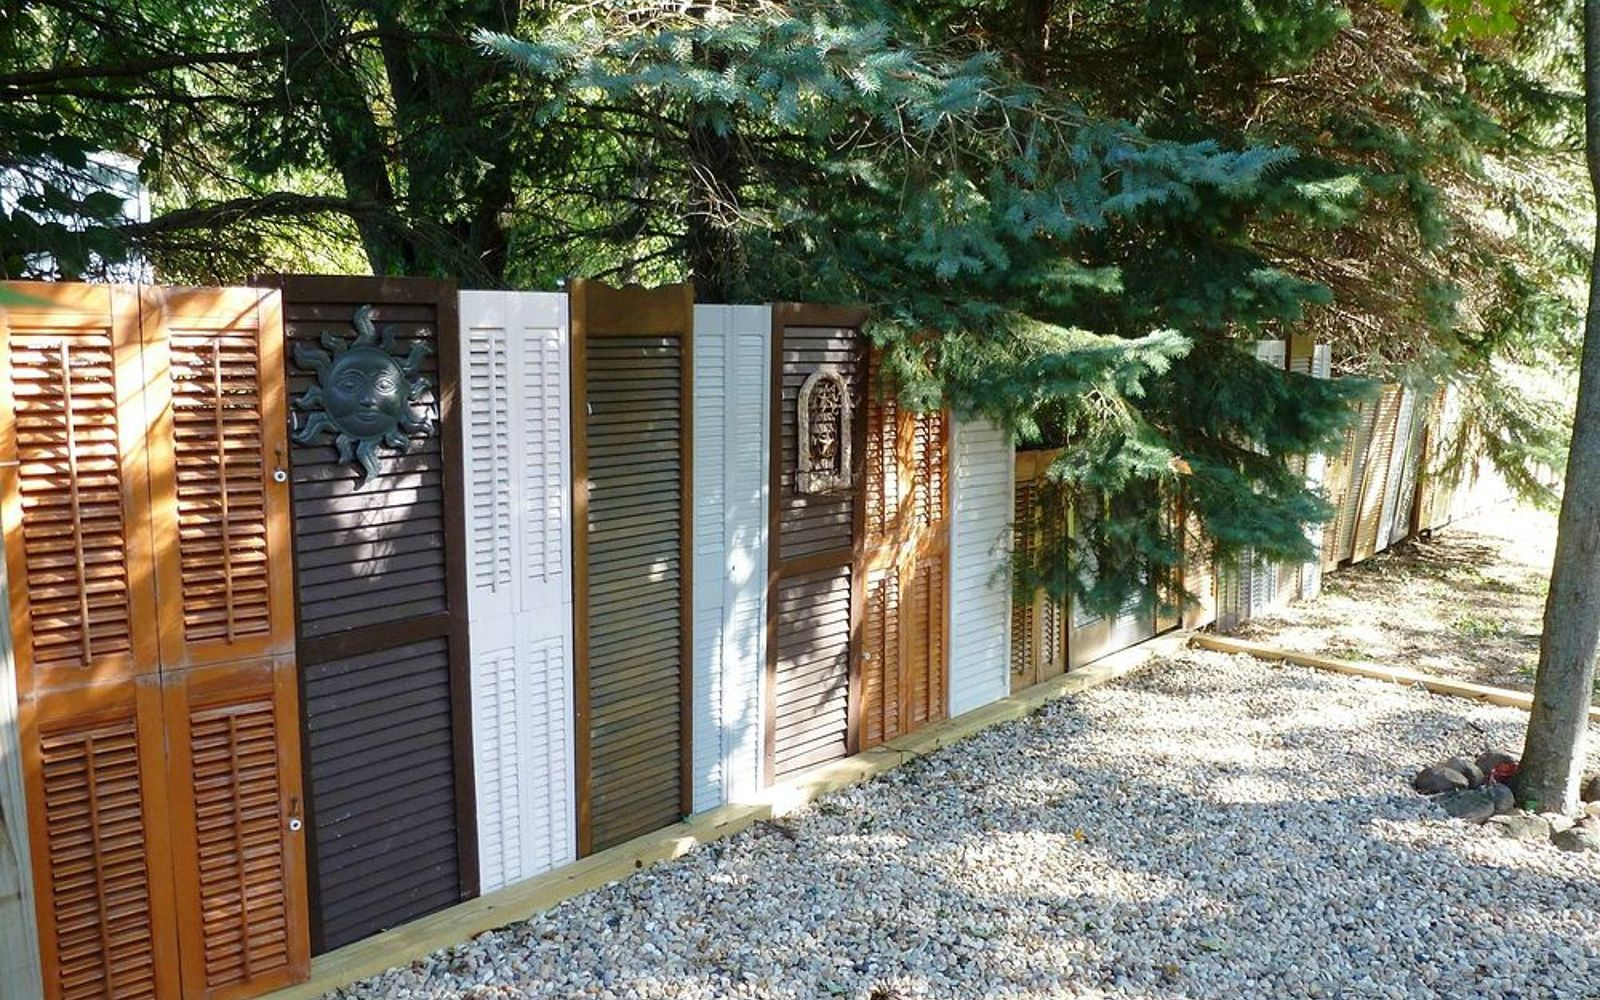 s 15 privacy fences that will turn your yard into a secluded oasis, curb appeal, fences, Or line up a mix of old shutters